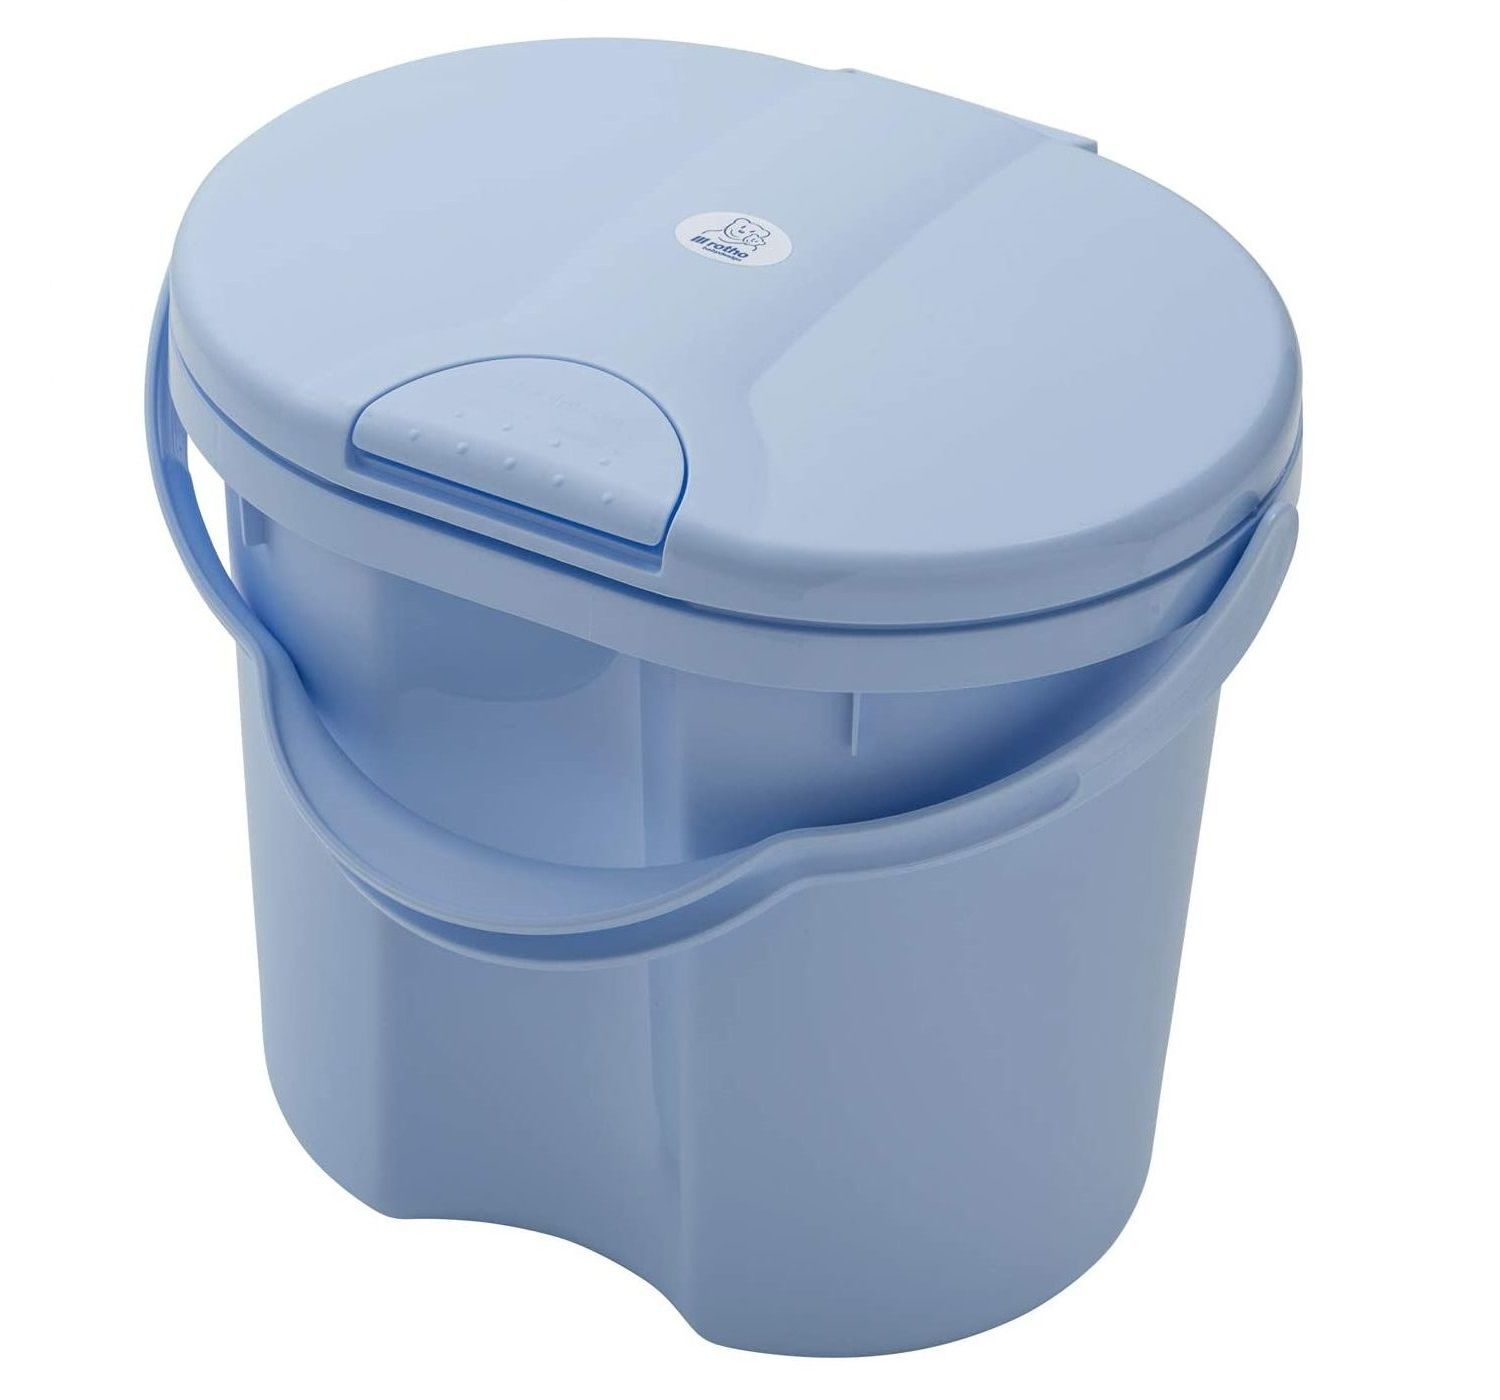 Rotho Babydesign TOP Nappy Bucket With Lid 11 Ltr Capacity - Choose your Colour - Sky Blue